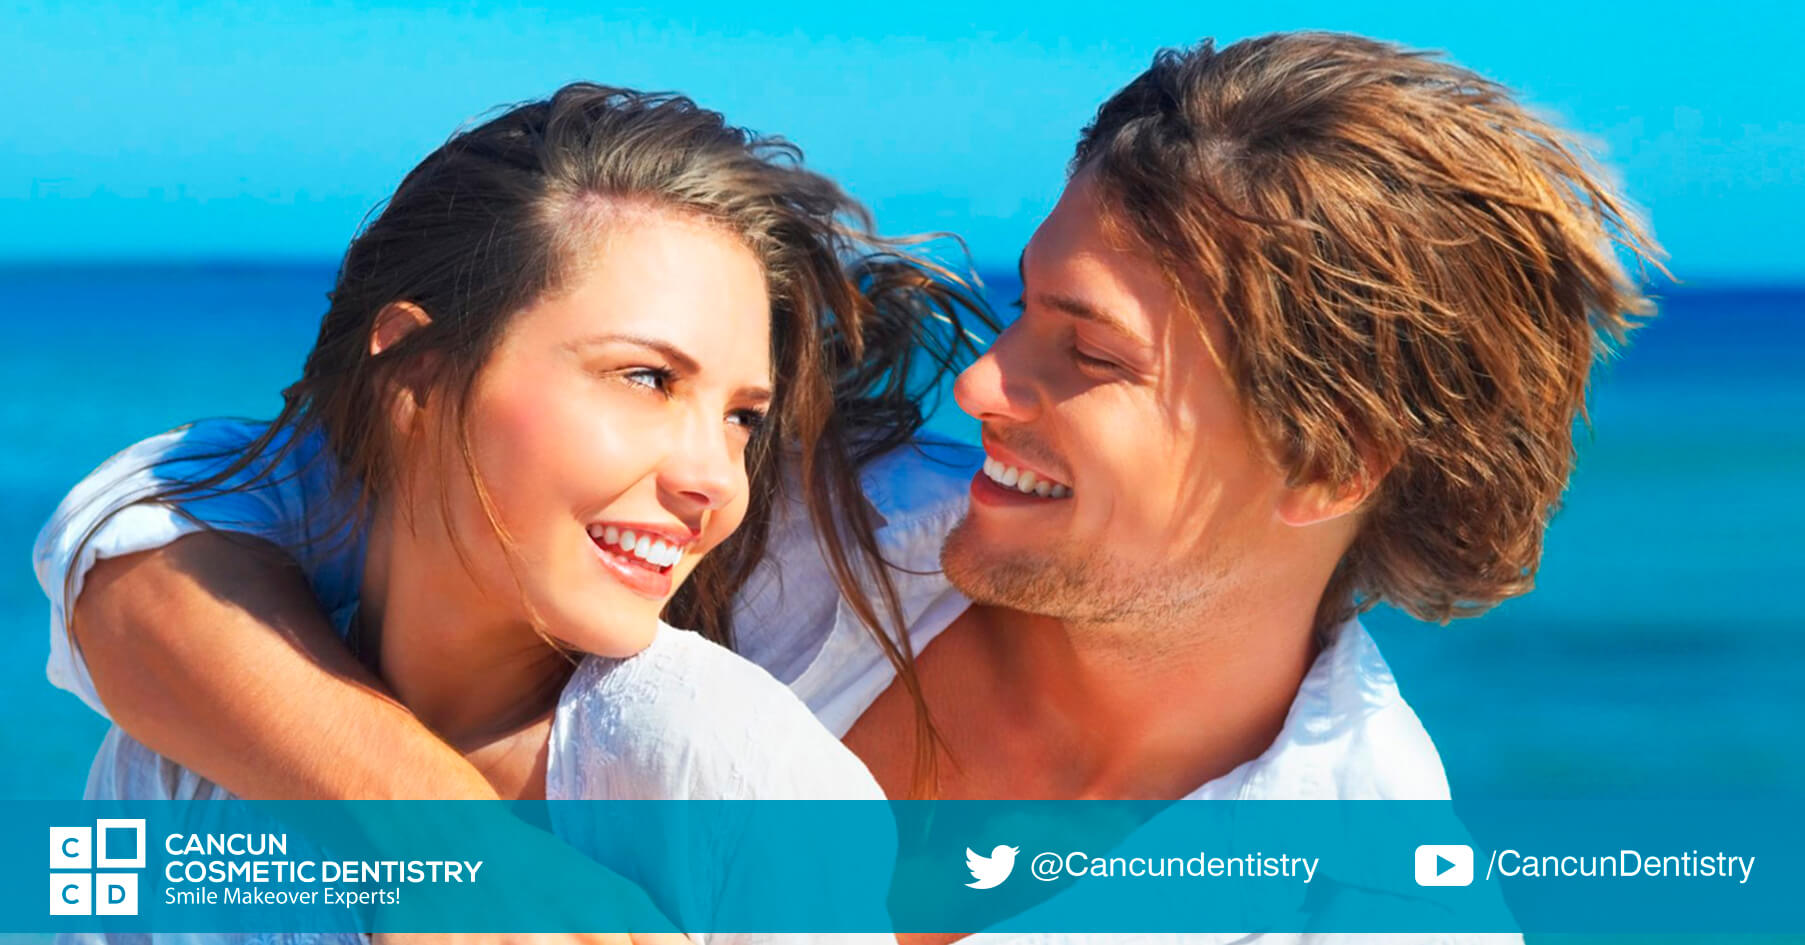 Get the best dental experience in Cancun Cosmetic Dentistry!